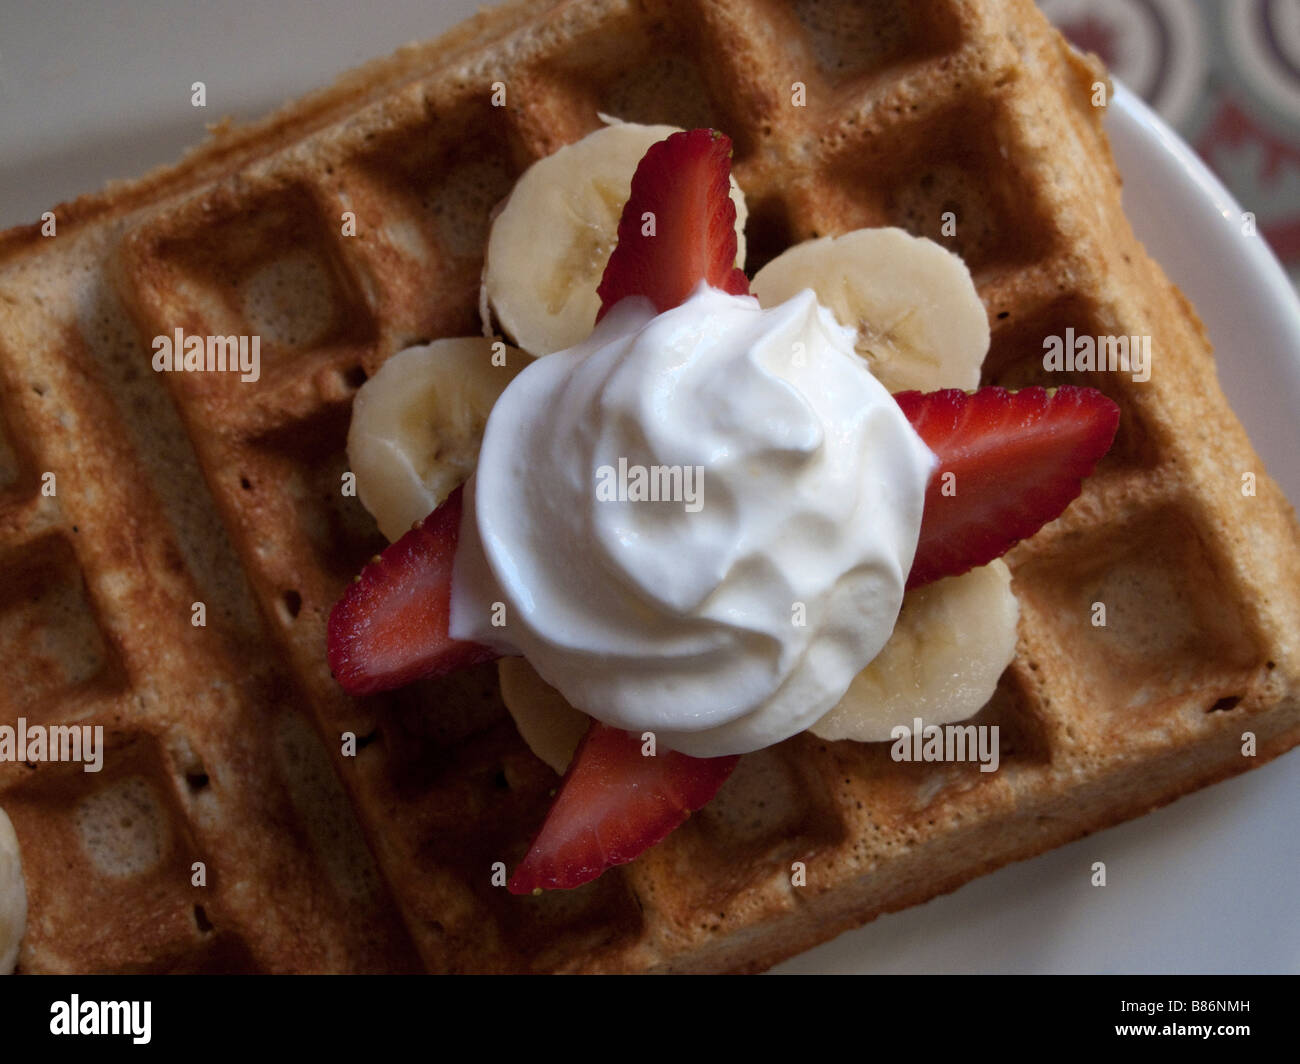 a delicious Mexican version of the Belgian (American) waffle made in a Oaxaca City cafe, Oaxaca, Mexico - Stock Image